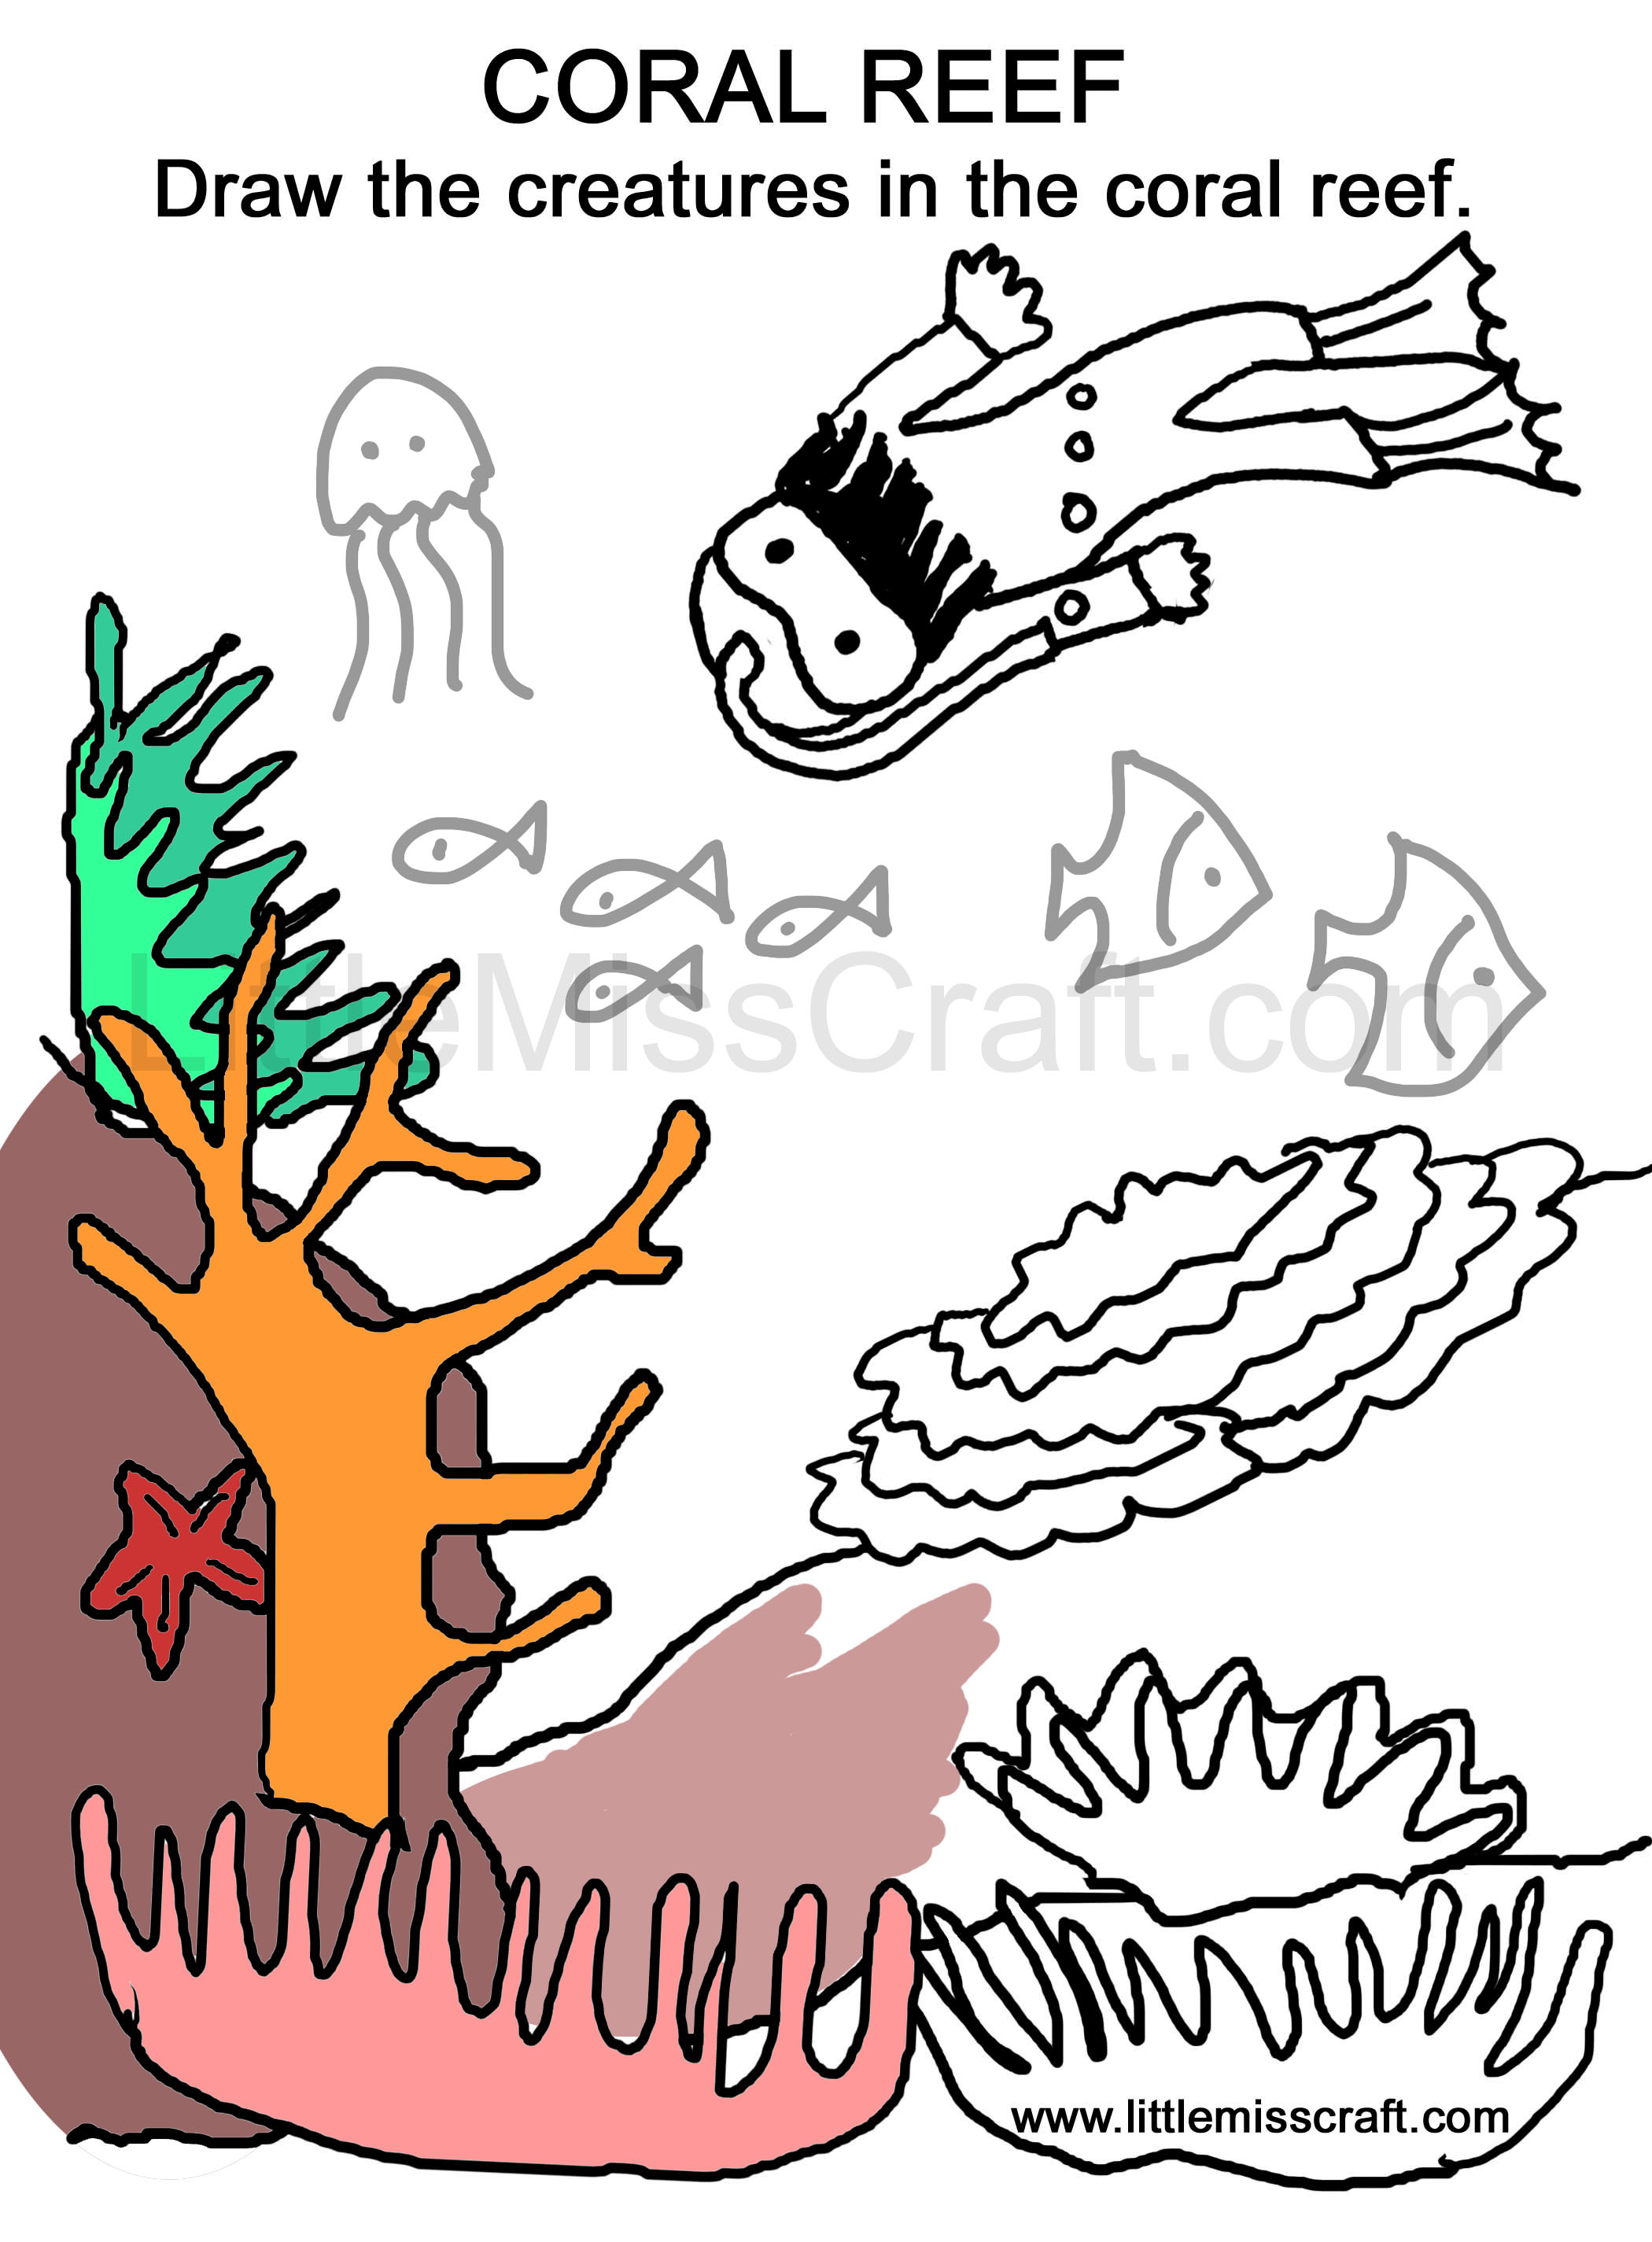 coloring, pages, doodle, drawing, diver, sea, coral reef, treasure